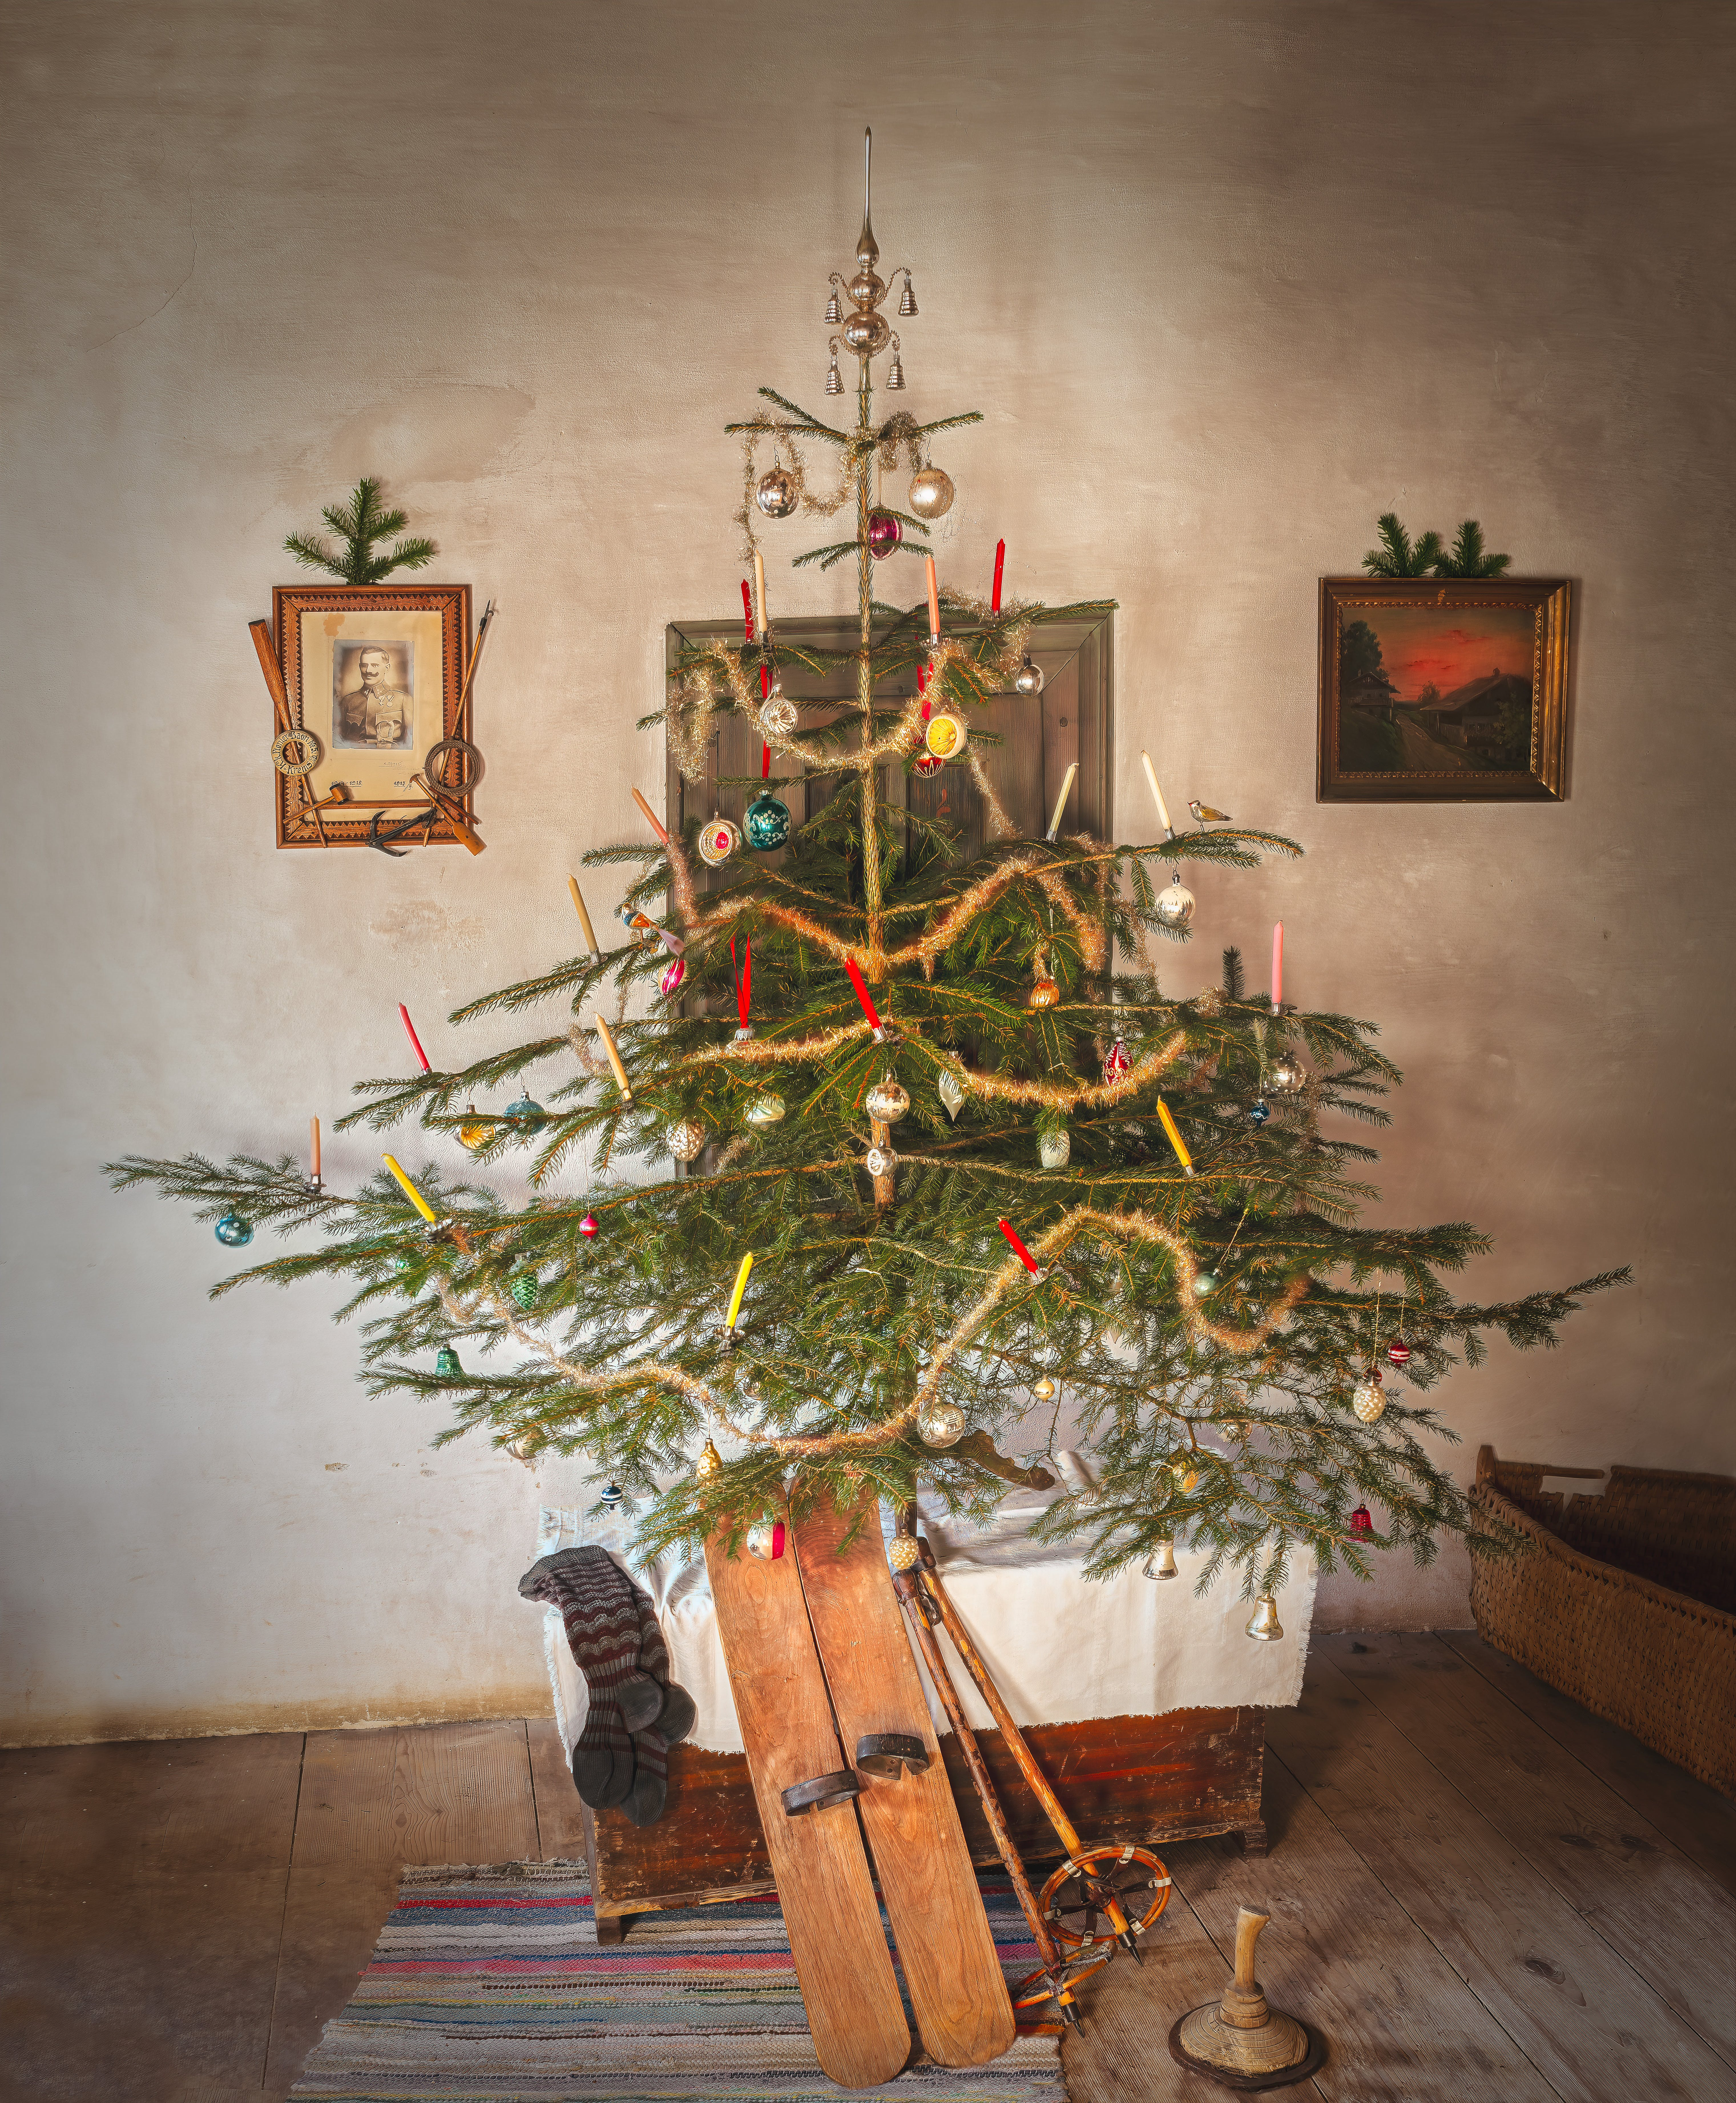 Christmas Tree In A Room